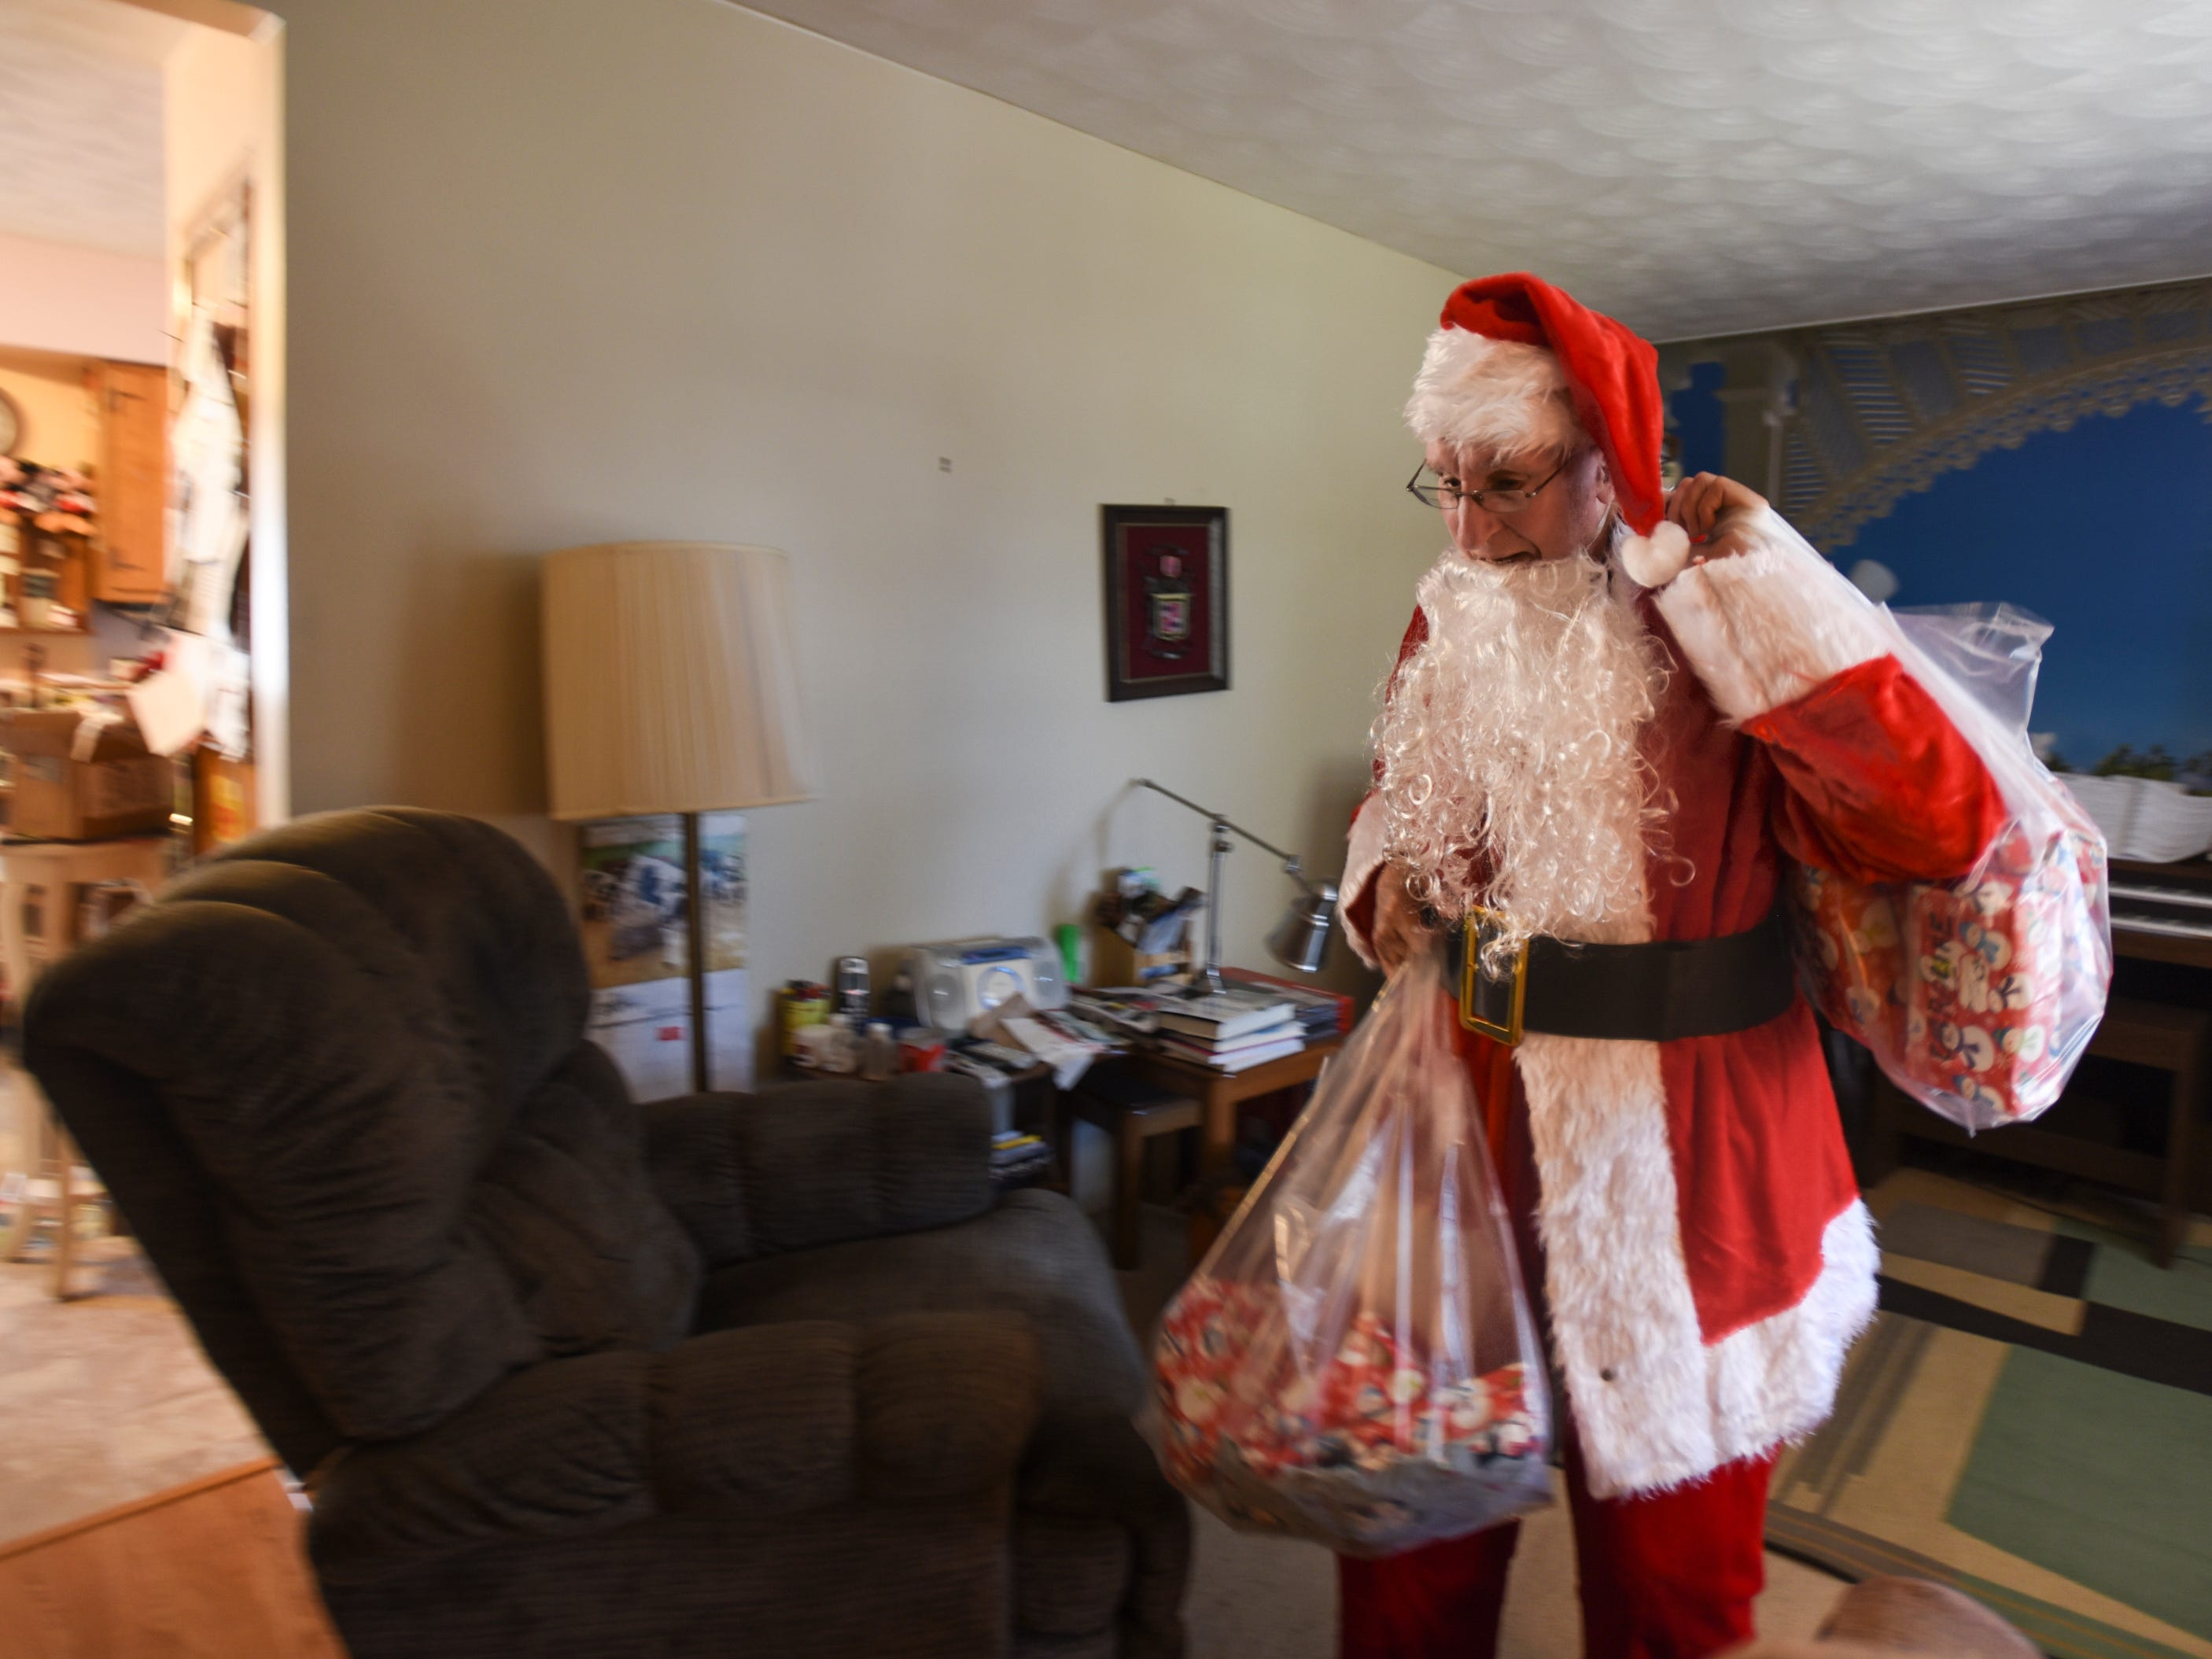 Dressed as Santa, Don West, 90, of Eaton Rapids, grabs two satchels of gifts he wrapped for workers and residents at Golden Days II Adult Foster Care in Charlotte, Michigan, Saturday, Dec. 8, 2018. He's heading to Charlotte from his home in Eaton Rapids, where he'll deliver the presents, and sing and dance for his wife Jackie, who's been in a nursing home since her stroke in June of 2017.